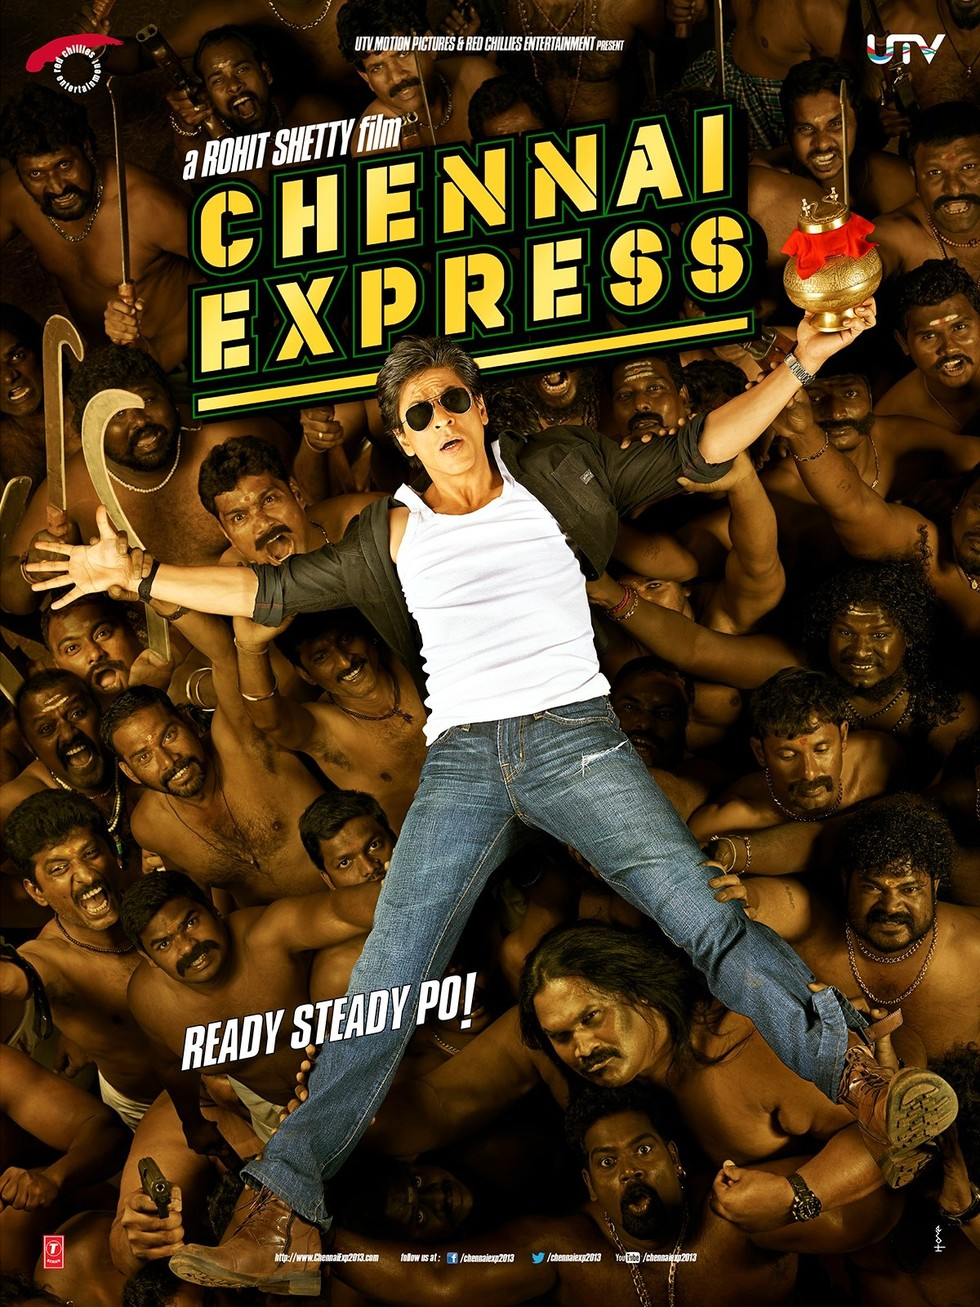 Chennai Express - Movie Poster #2 (Large)